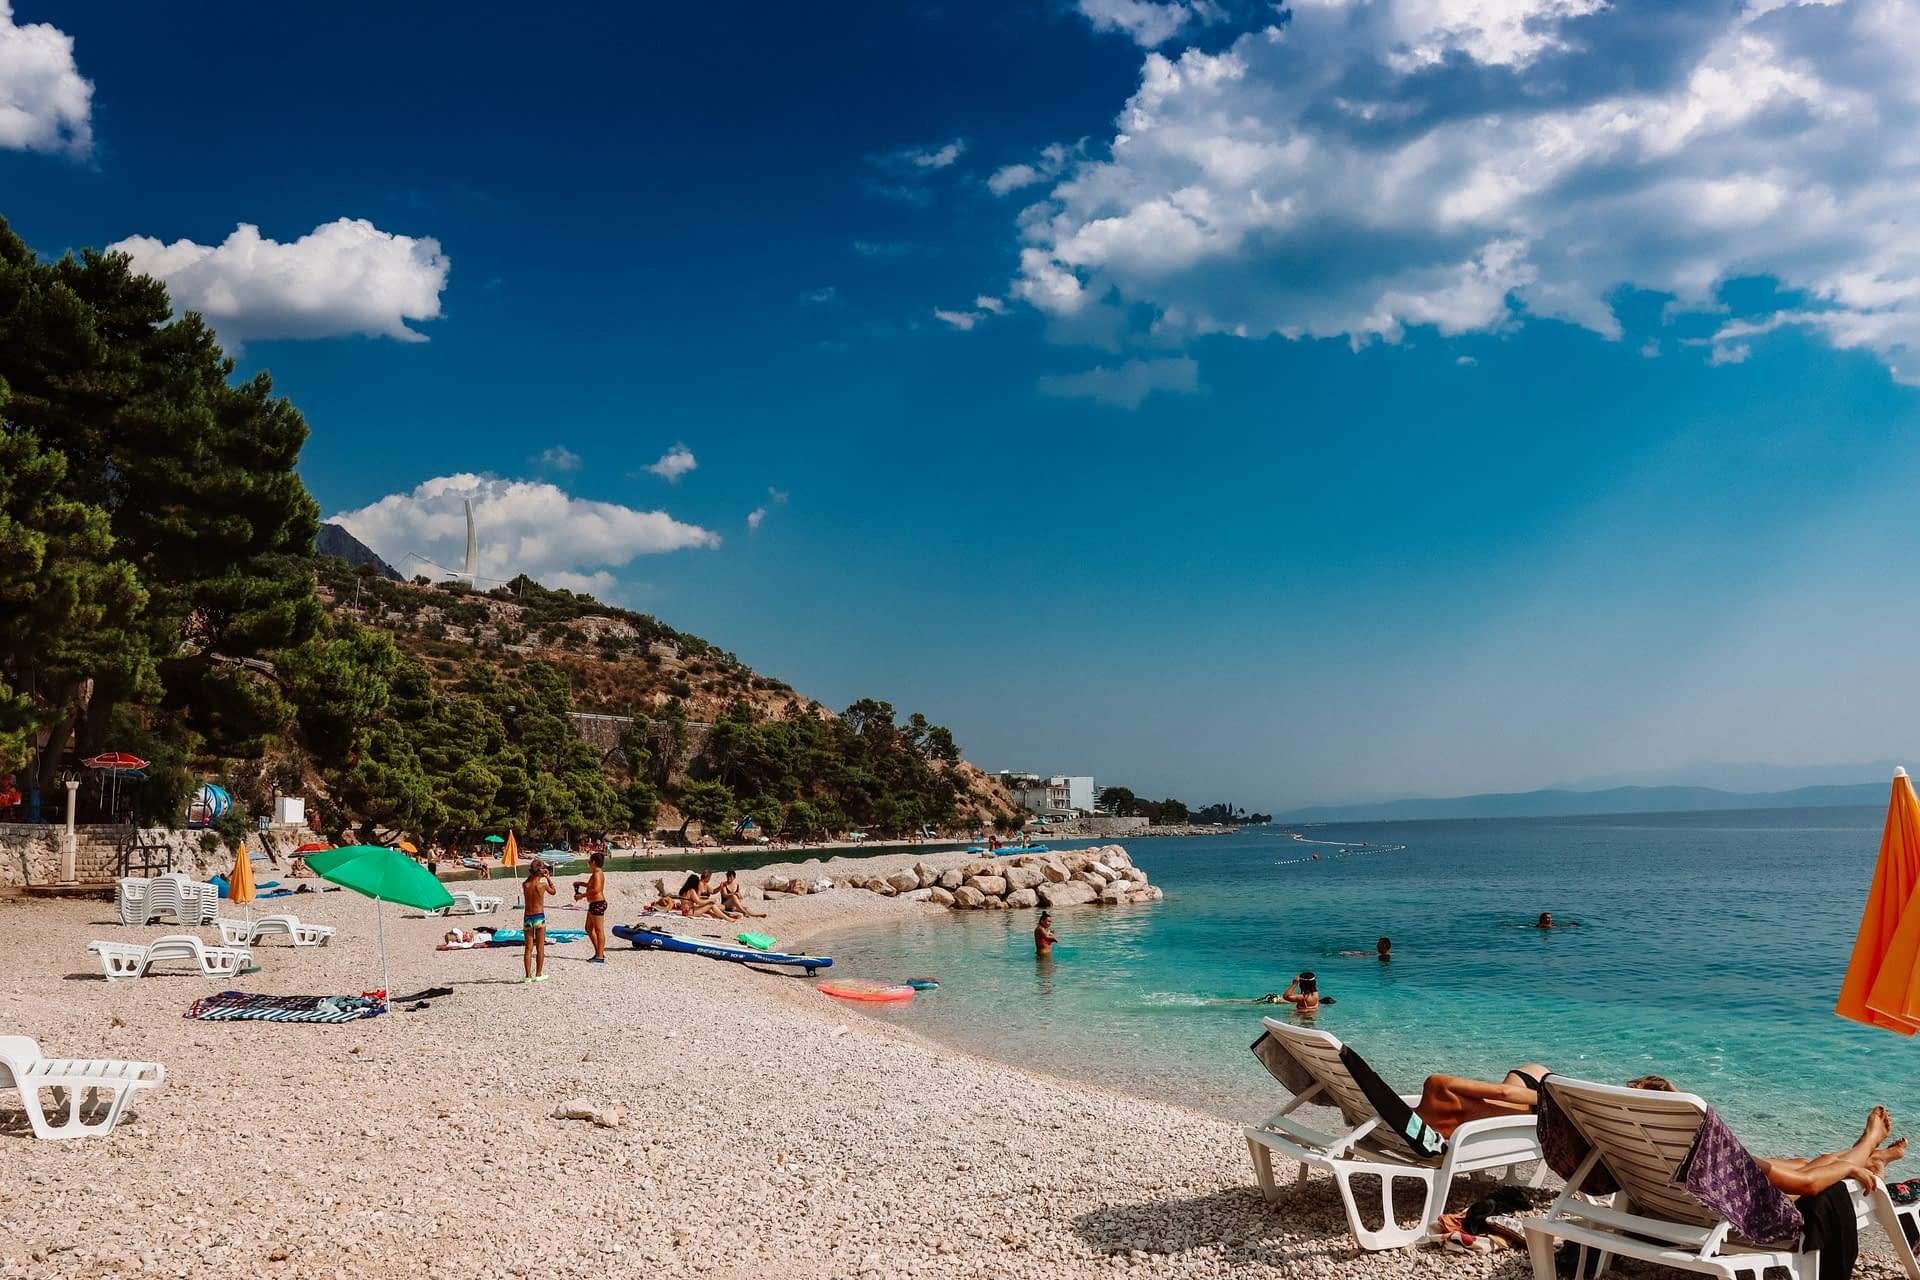 Garma bay with turquoise water. Things to do in the Croatian Riviera